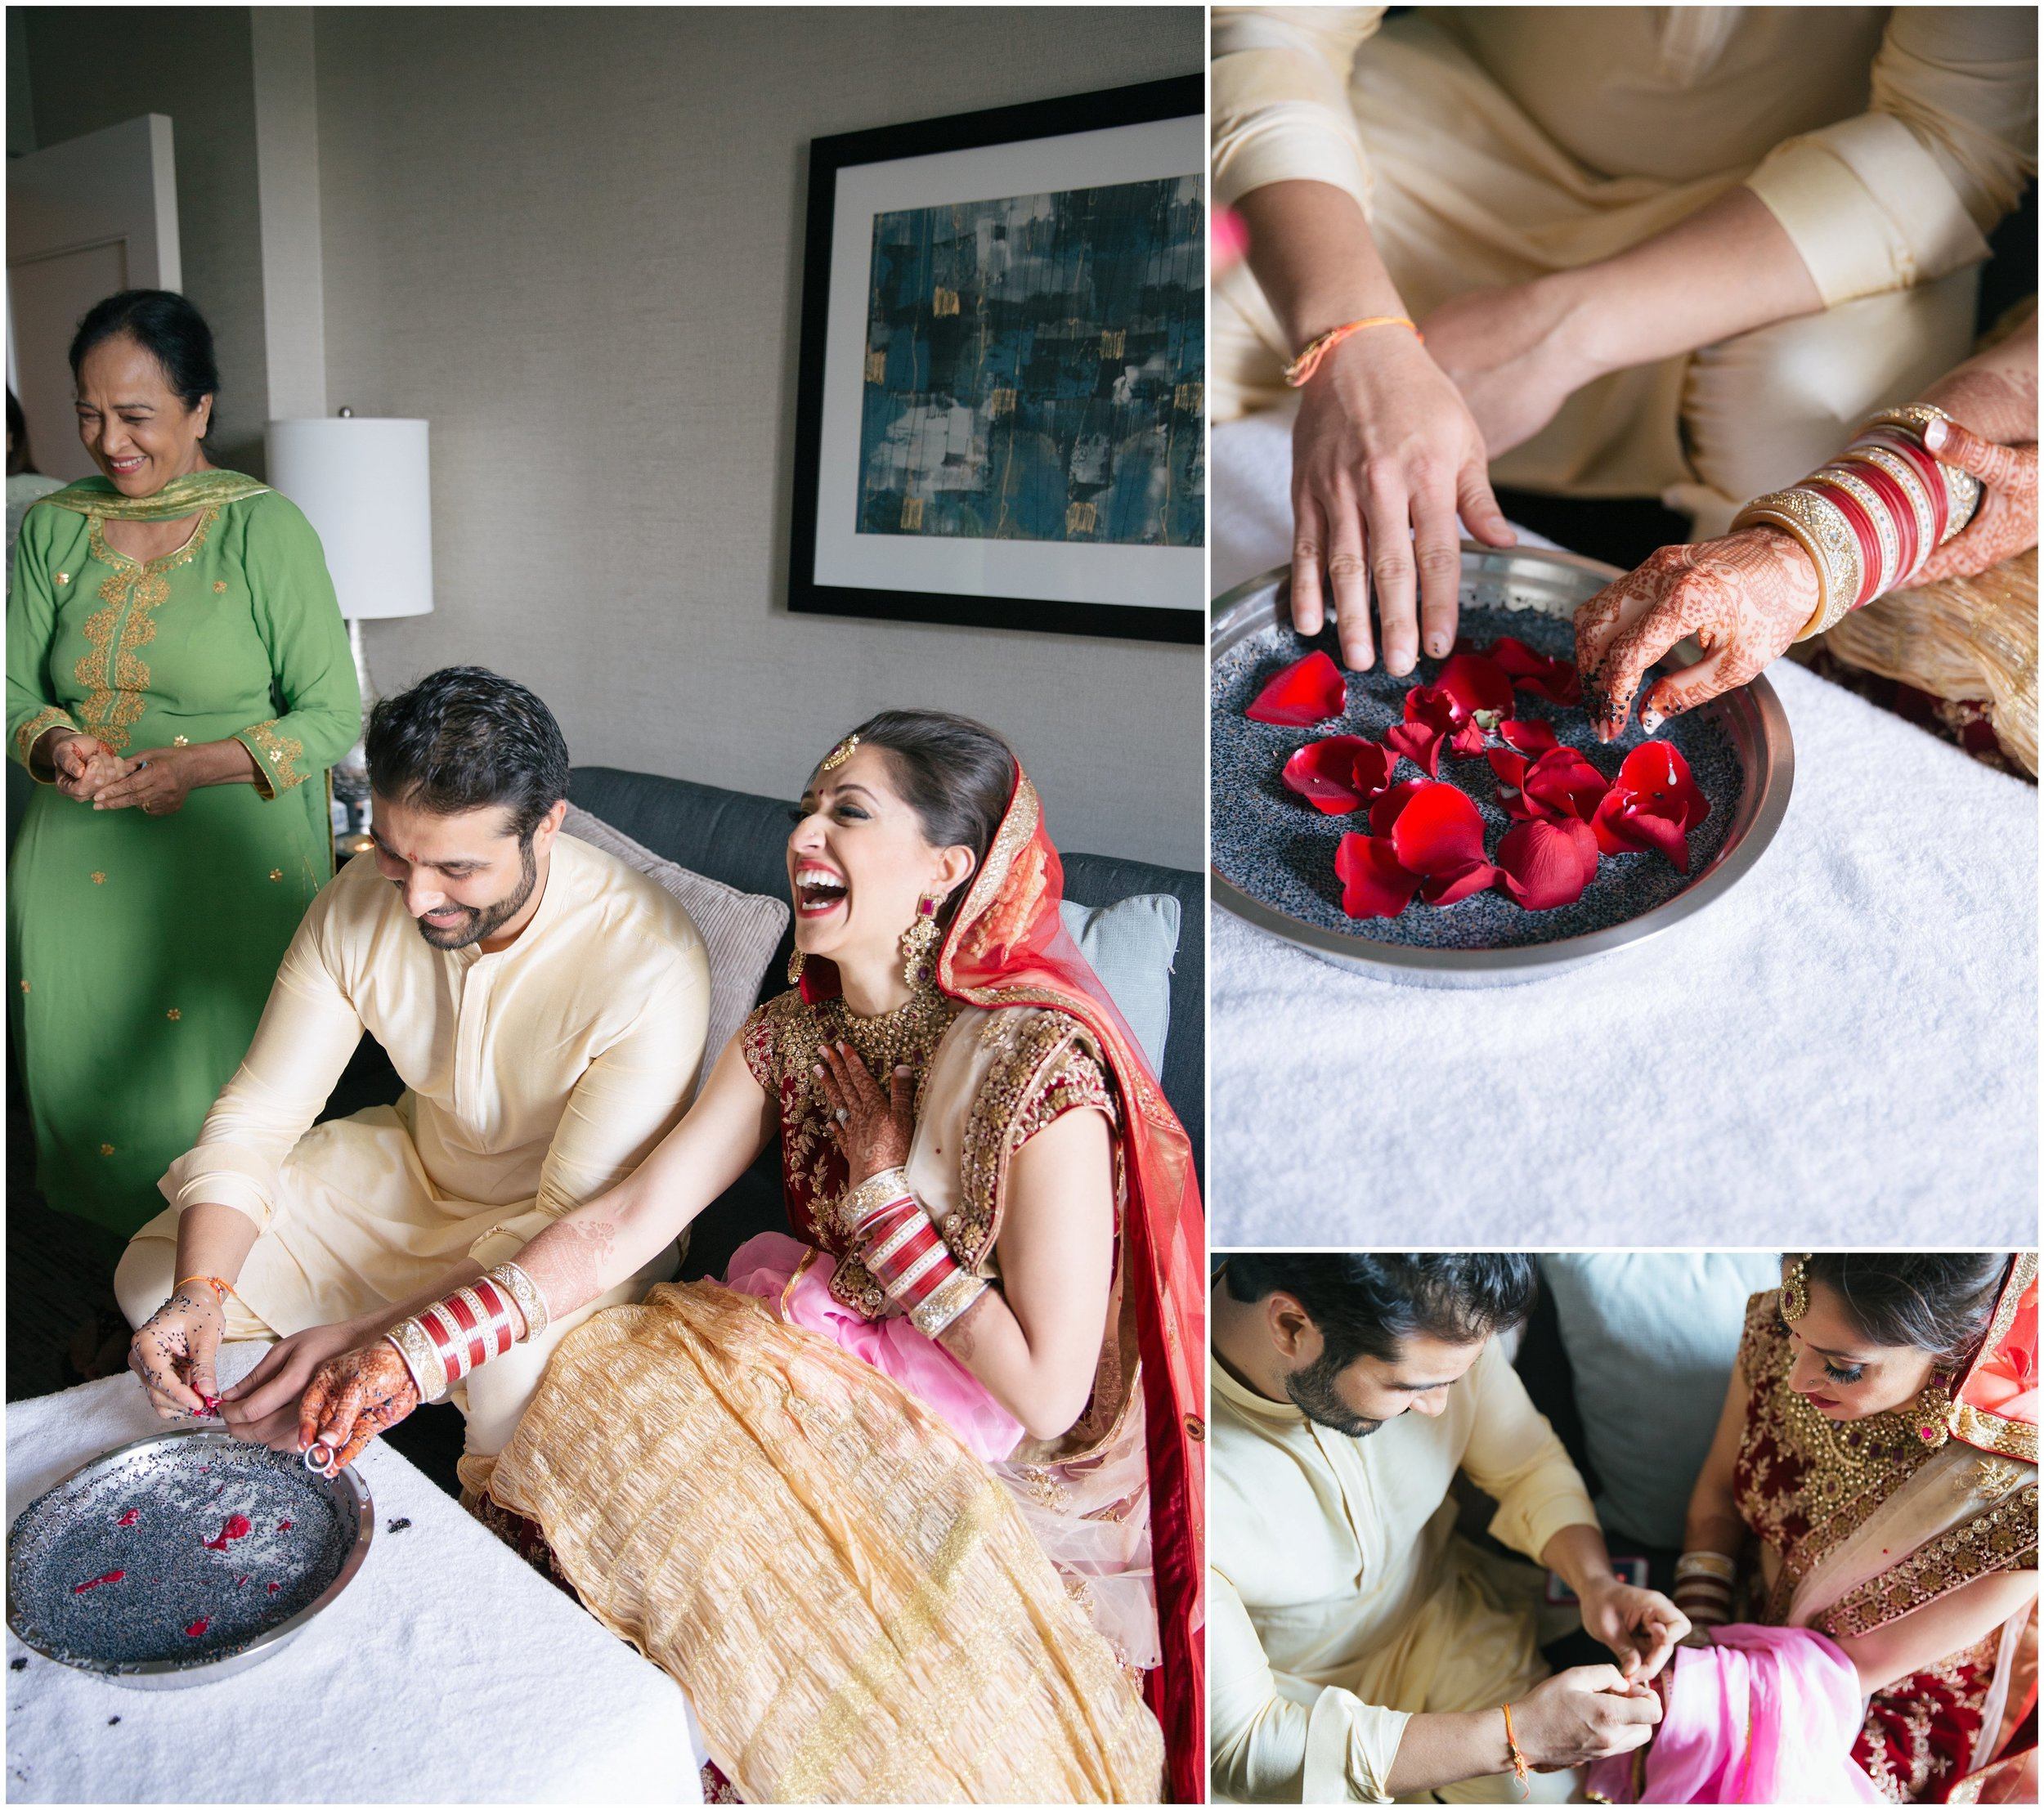 Le Cape Weddings - South Asian Wedding in Illinois - Tanvi and Anshul -0998_LuxuryDestinationPhotographer.jpg